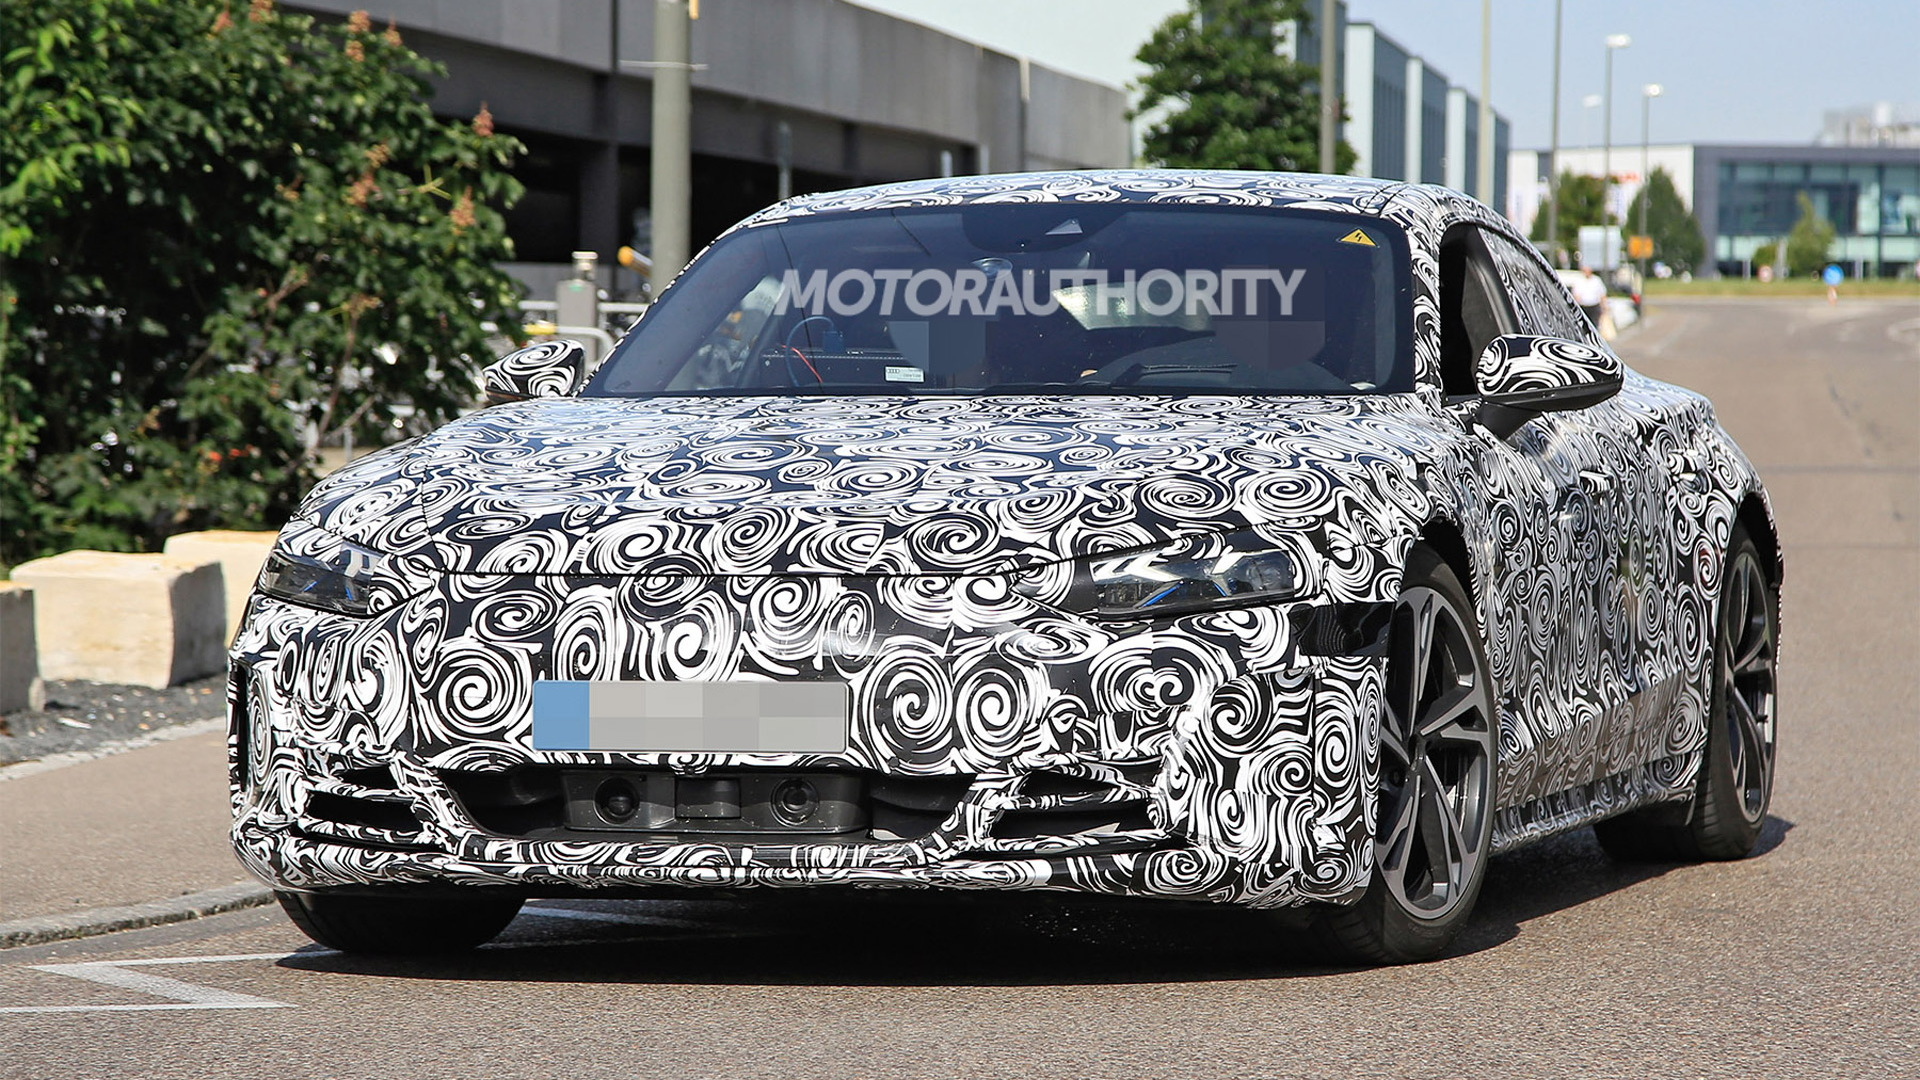 2022 Audi E-Tron GT spy shots - Photo credit: S. Baldauf/SB-Medien